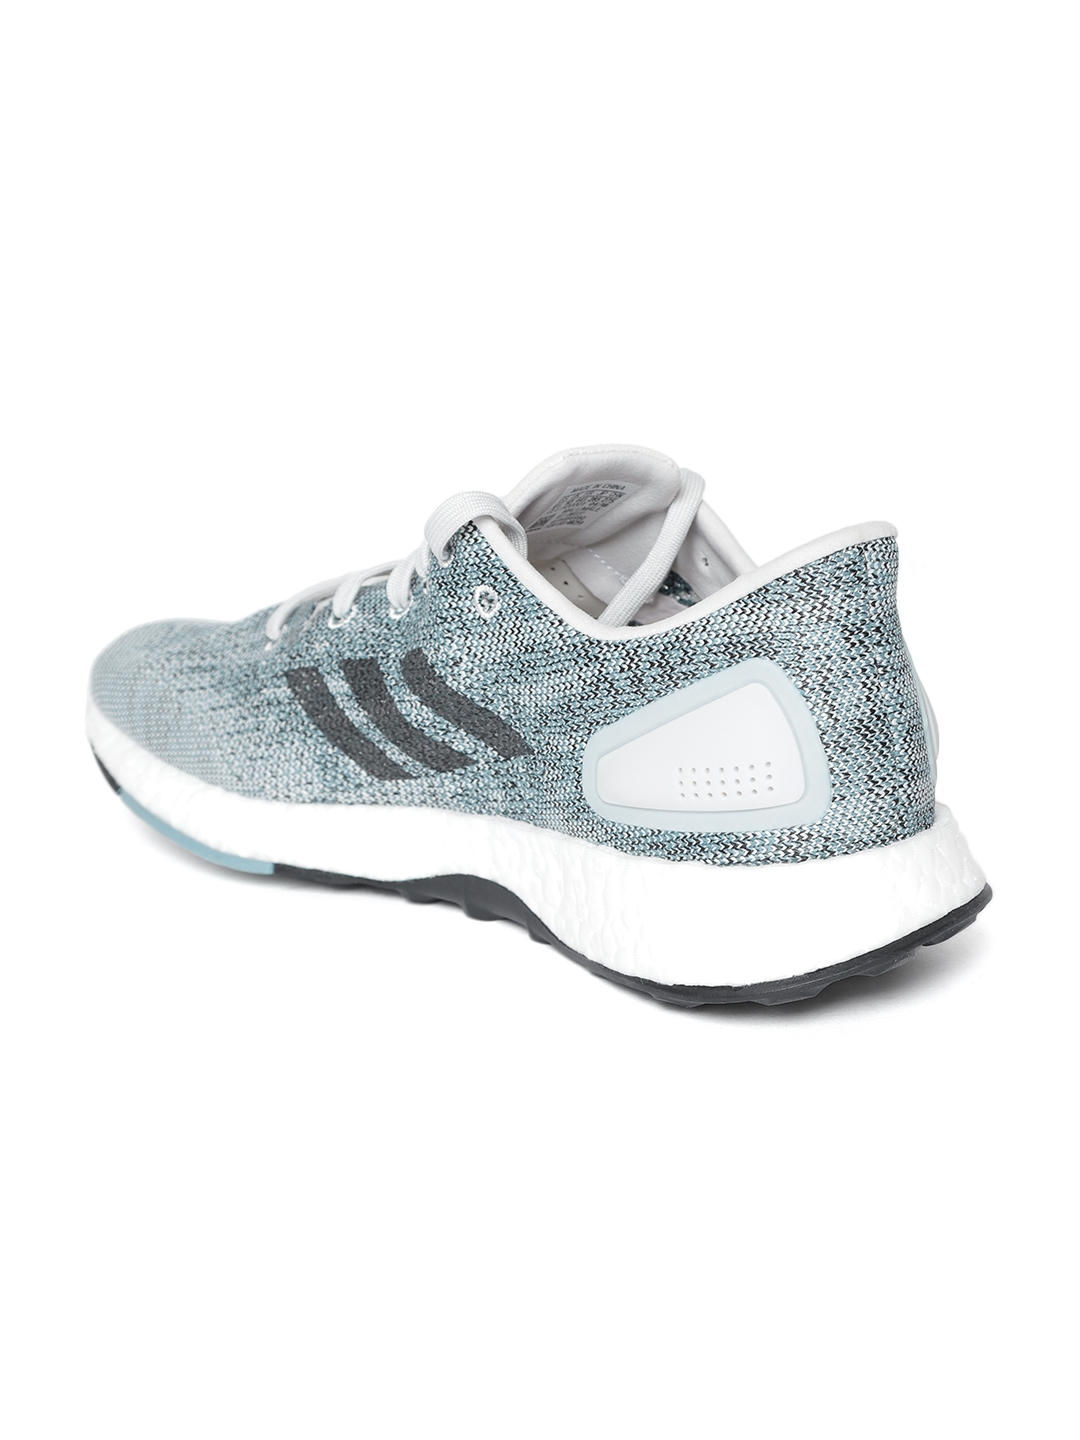 dea0ecdc4 Buy ADIDAS Men Grey   Off White Pure Boost DPR Running Shoes ...